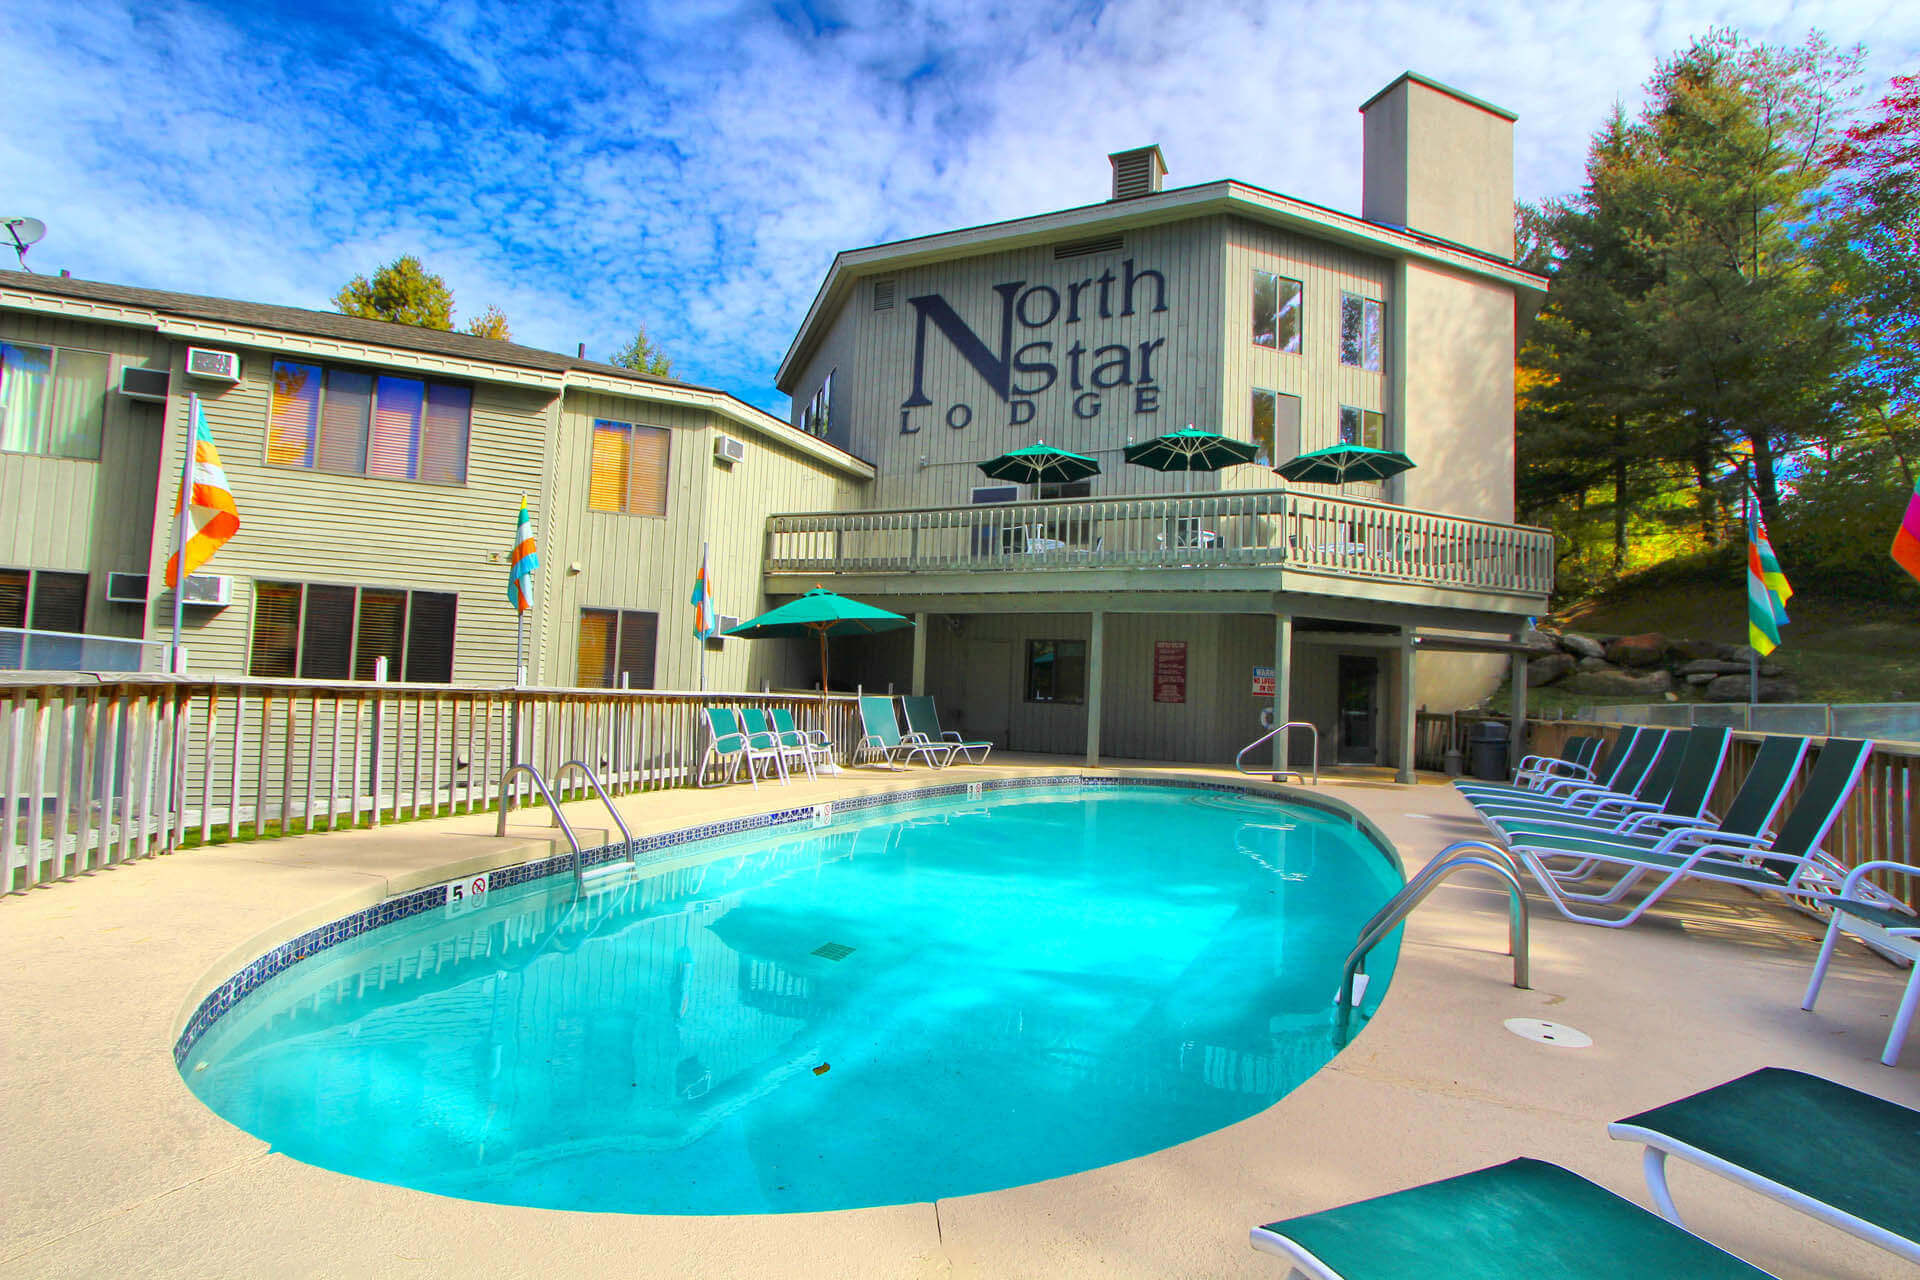 Northstar Lodge Pool